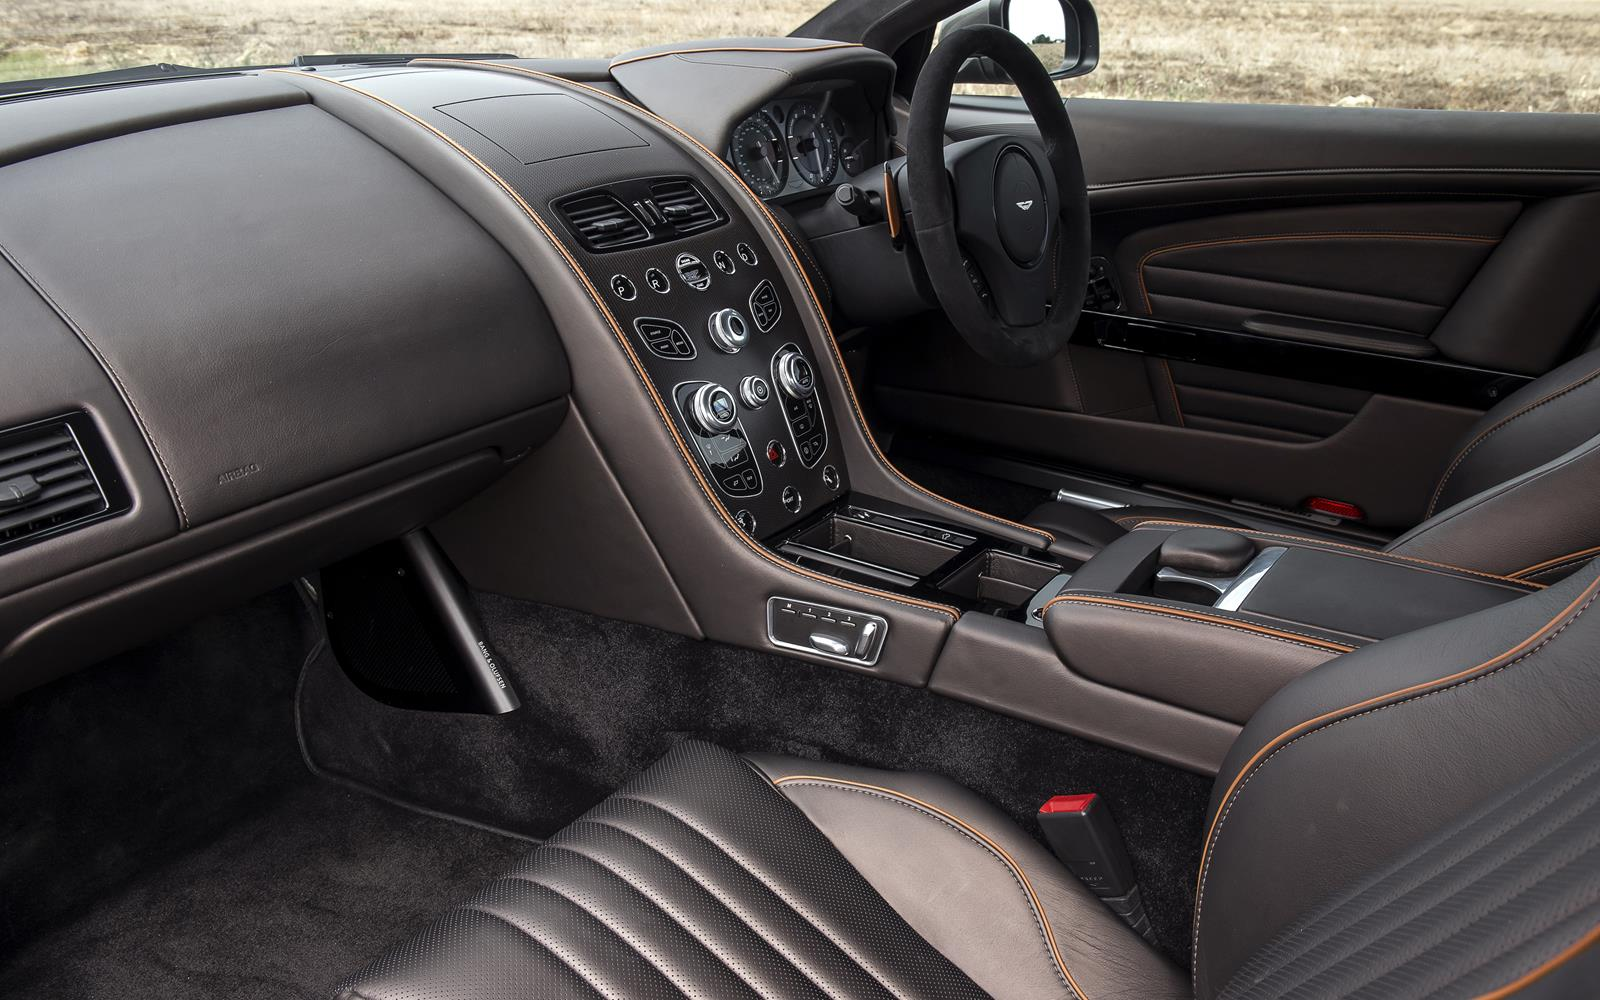 Aston Martin DB9 GT 2015 Interior